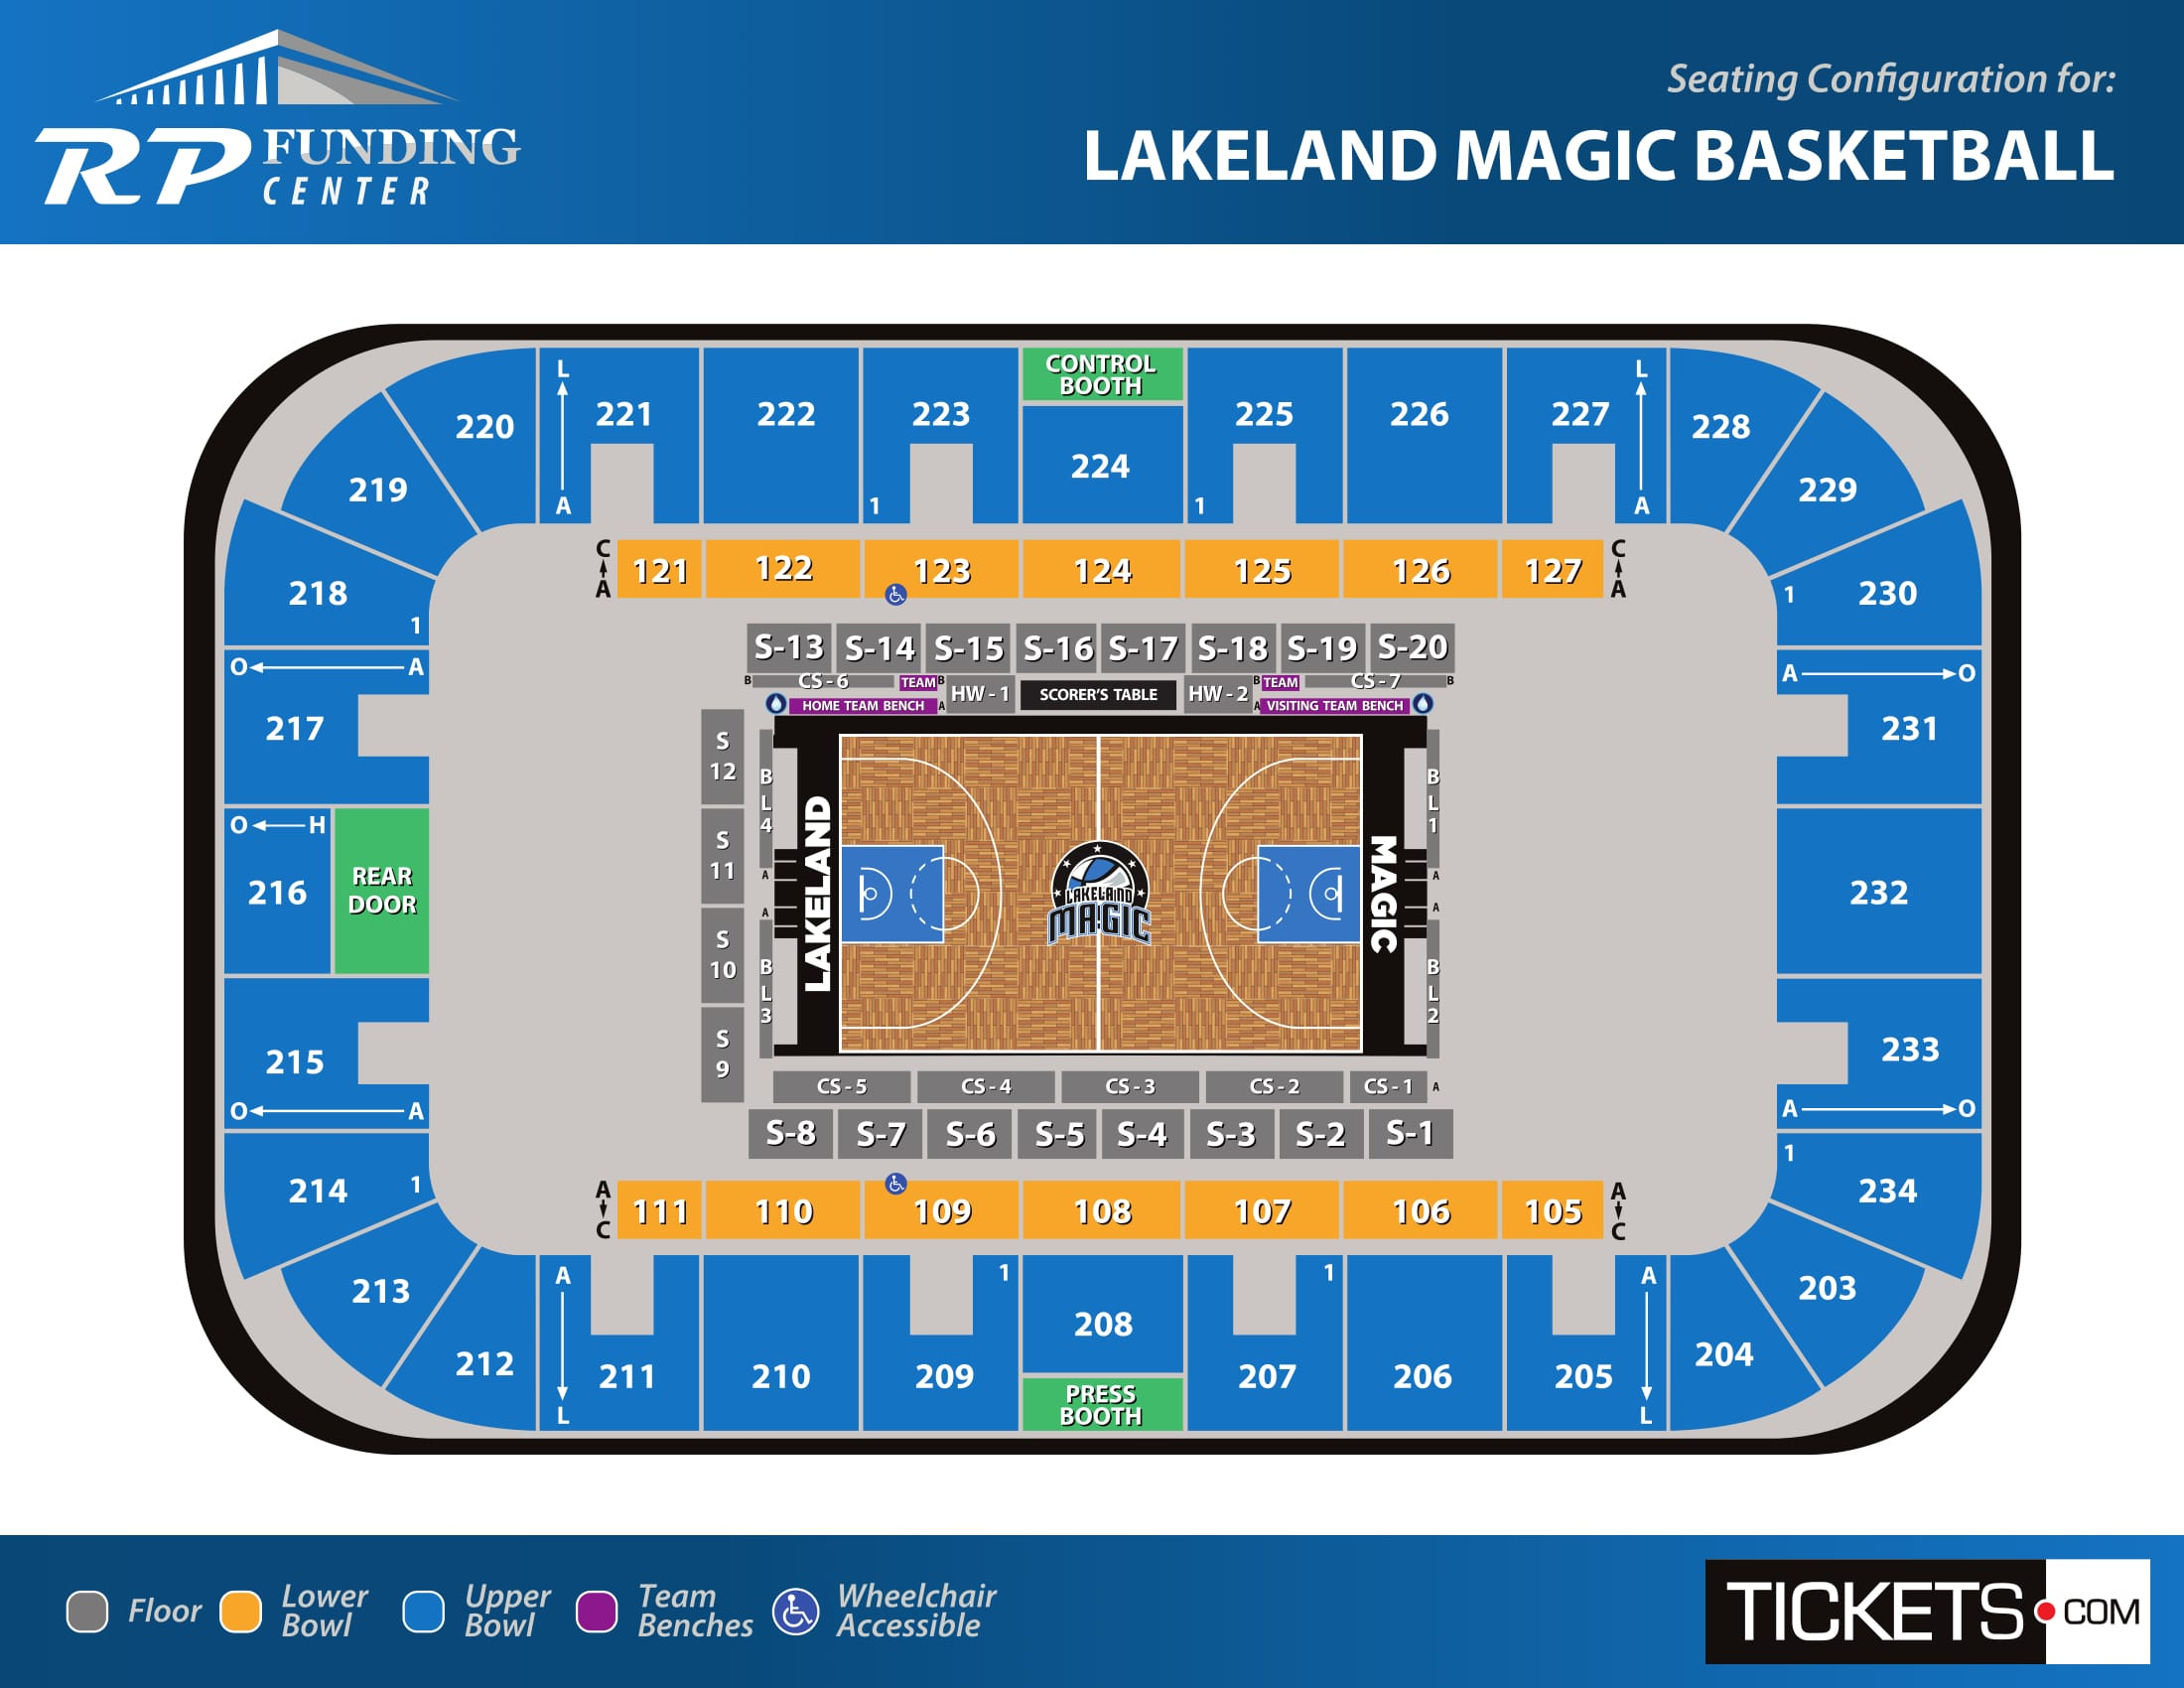 Lakeland Magic Basketball seating map